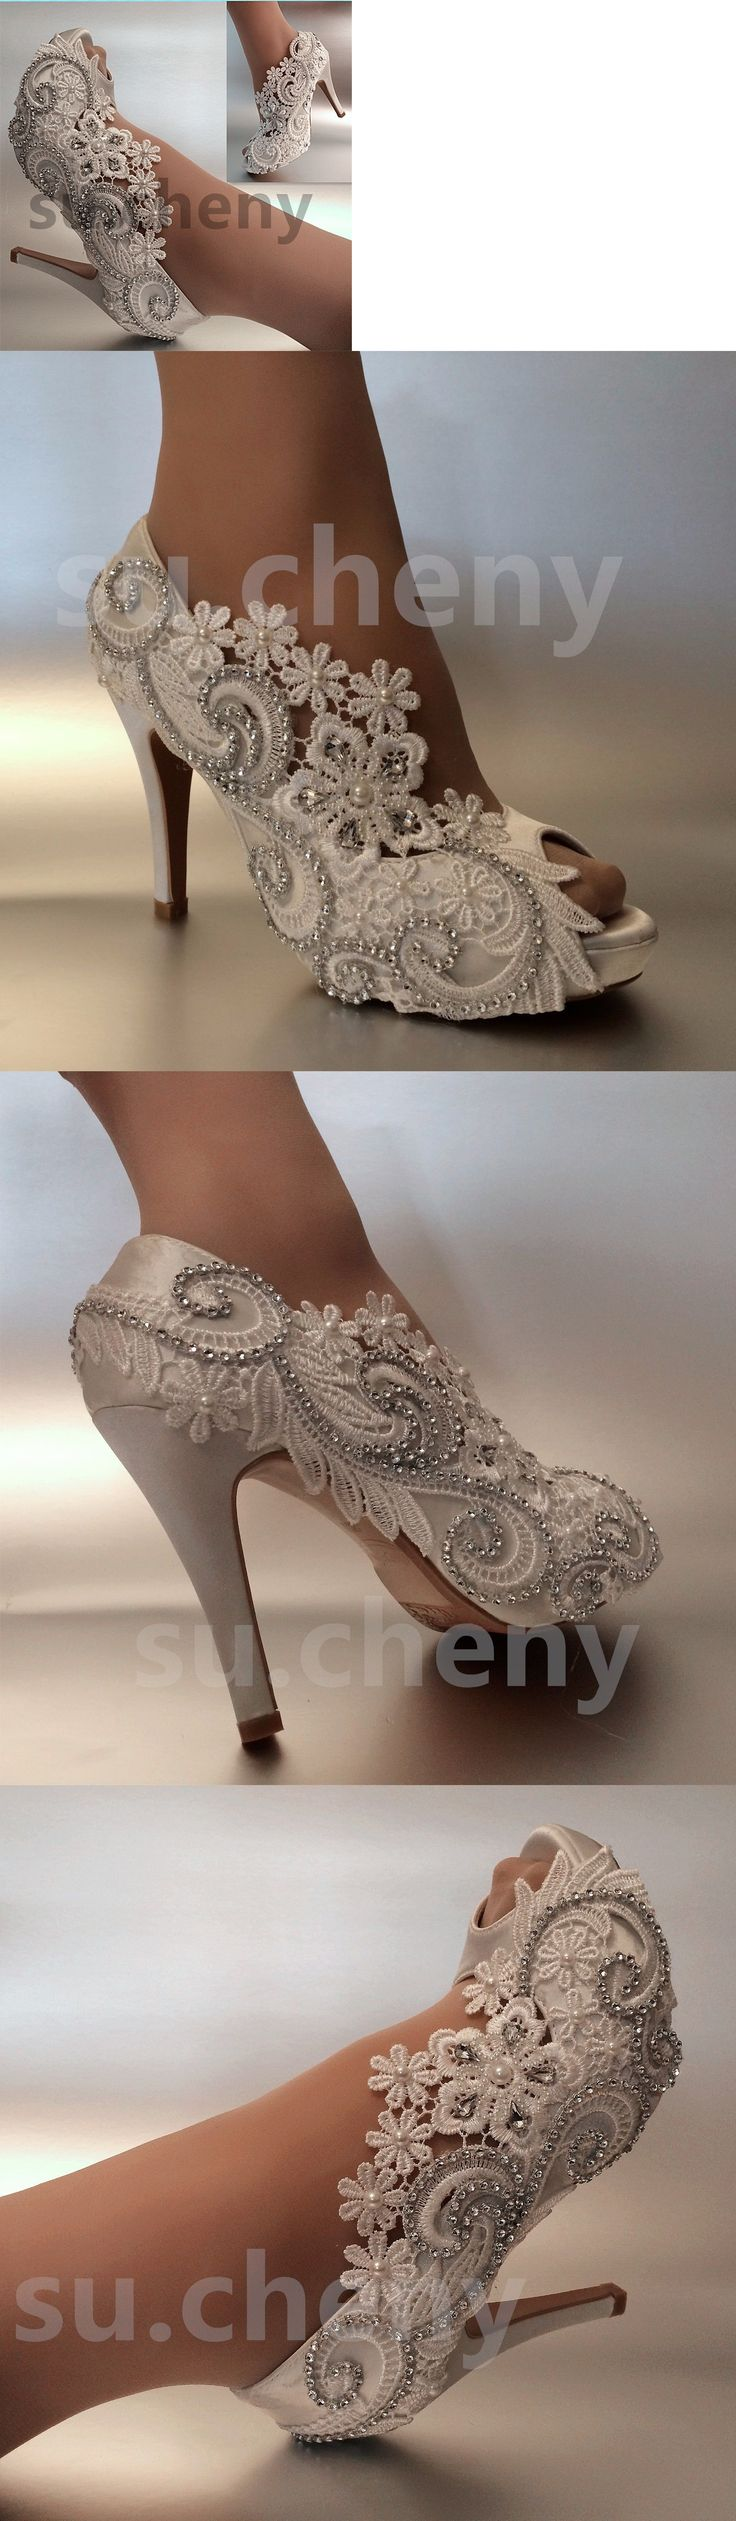 Wedding Shoes And Bridal Shoes  34 Heel Satin White Ivory Lace Pearls Open  Toe Wedding db889a2263b